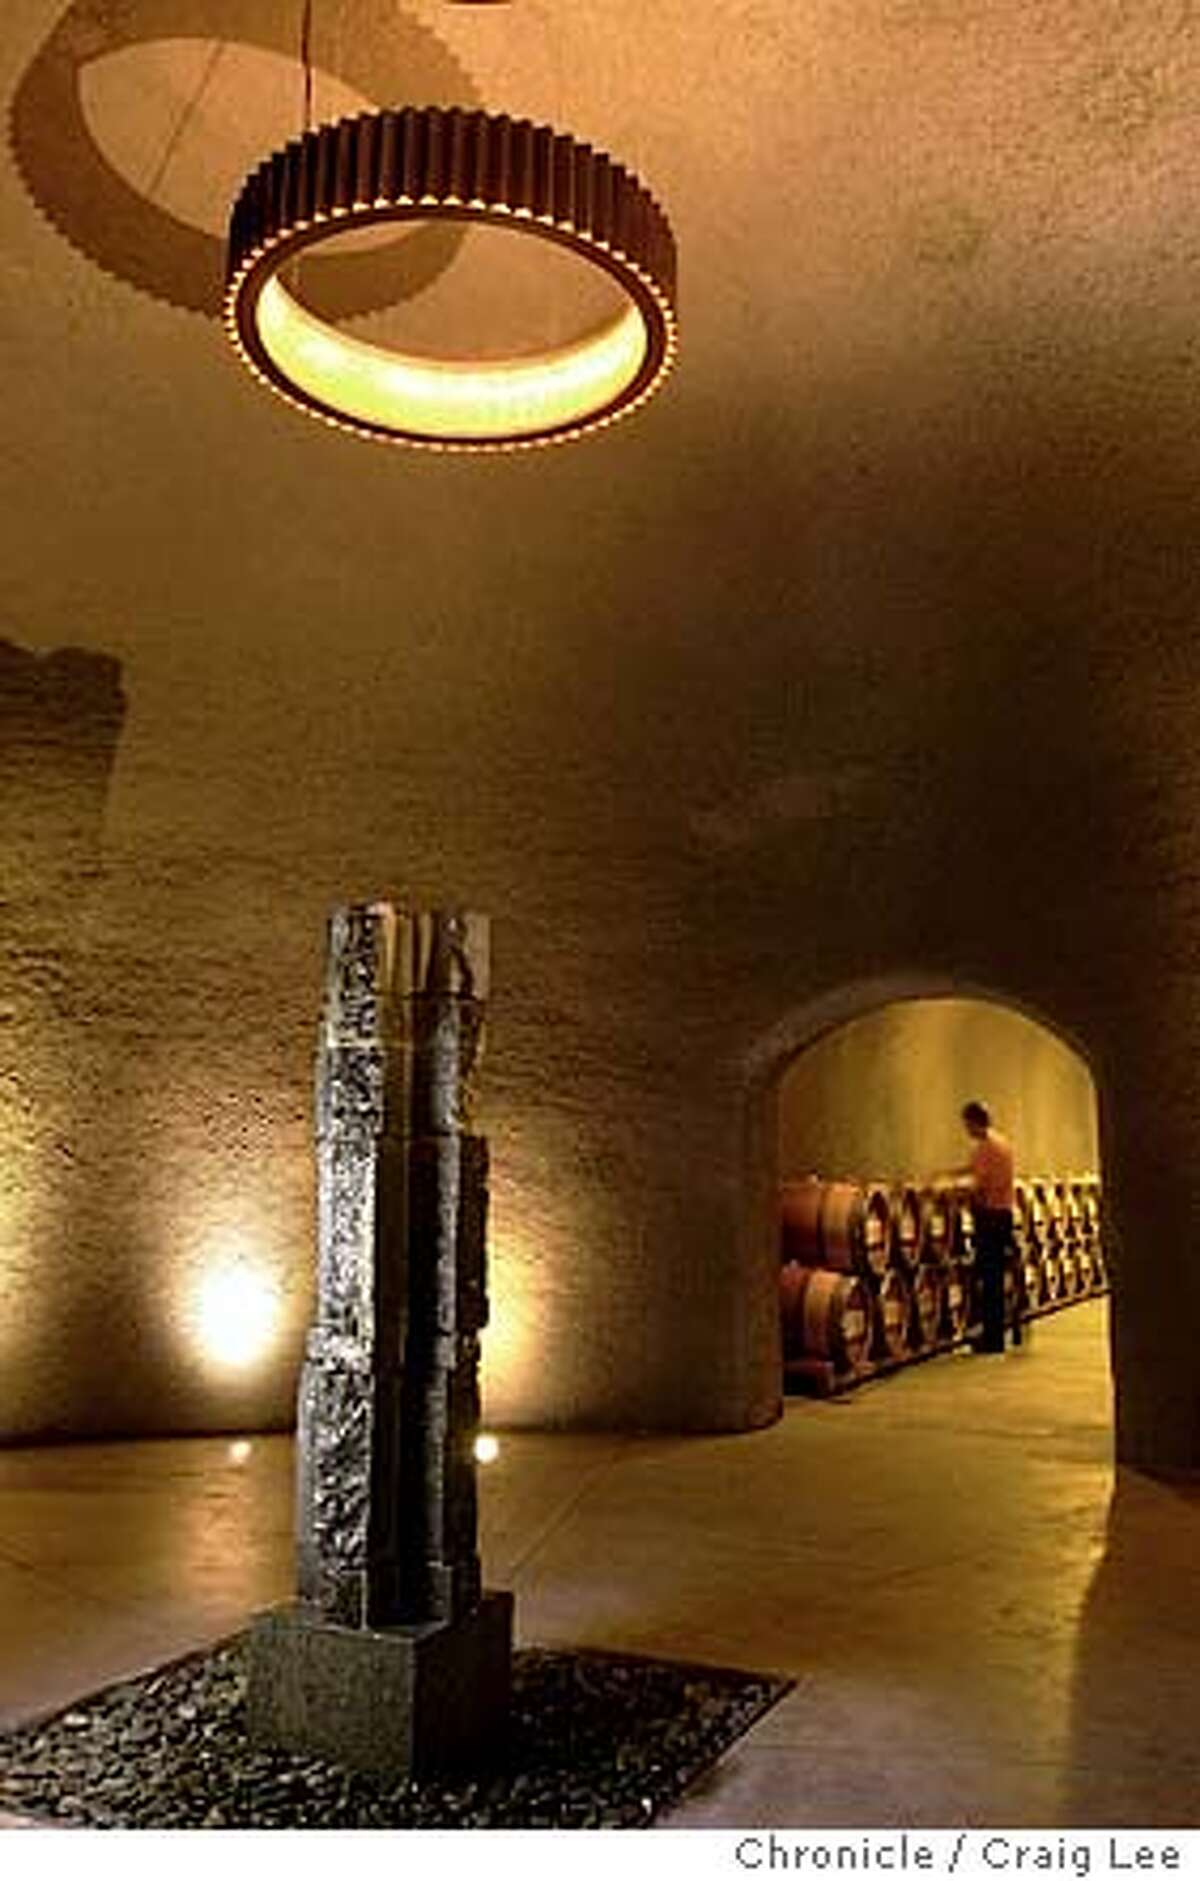 The new Quintessa wine cave in St. Helena. Event on 12/3/03 in St. Helena. CRAIG LEE / The Chronicle